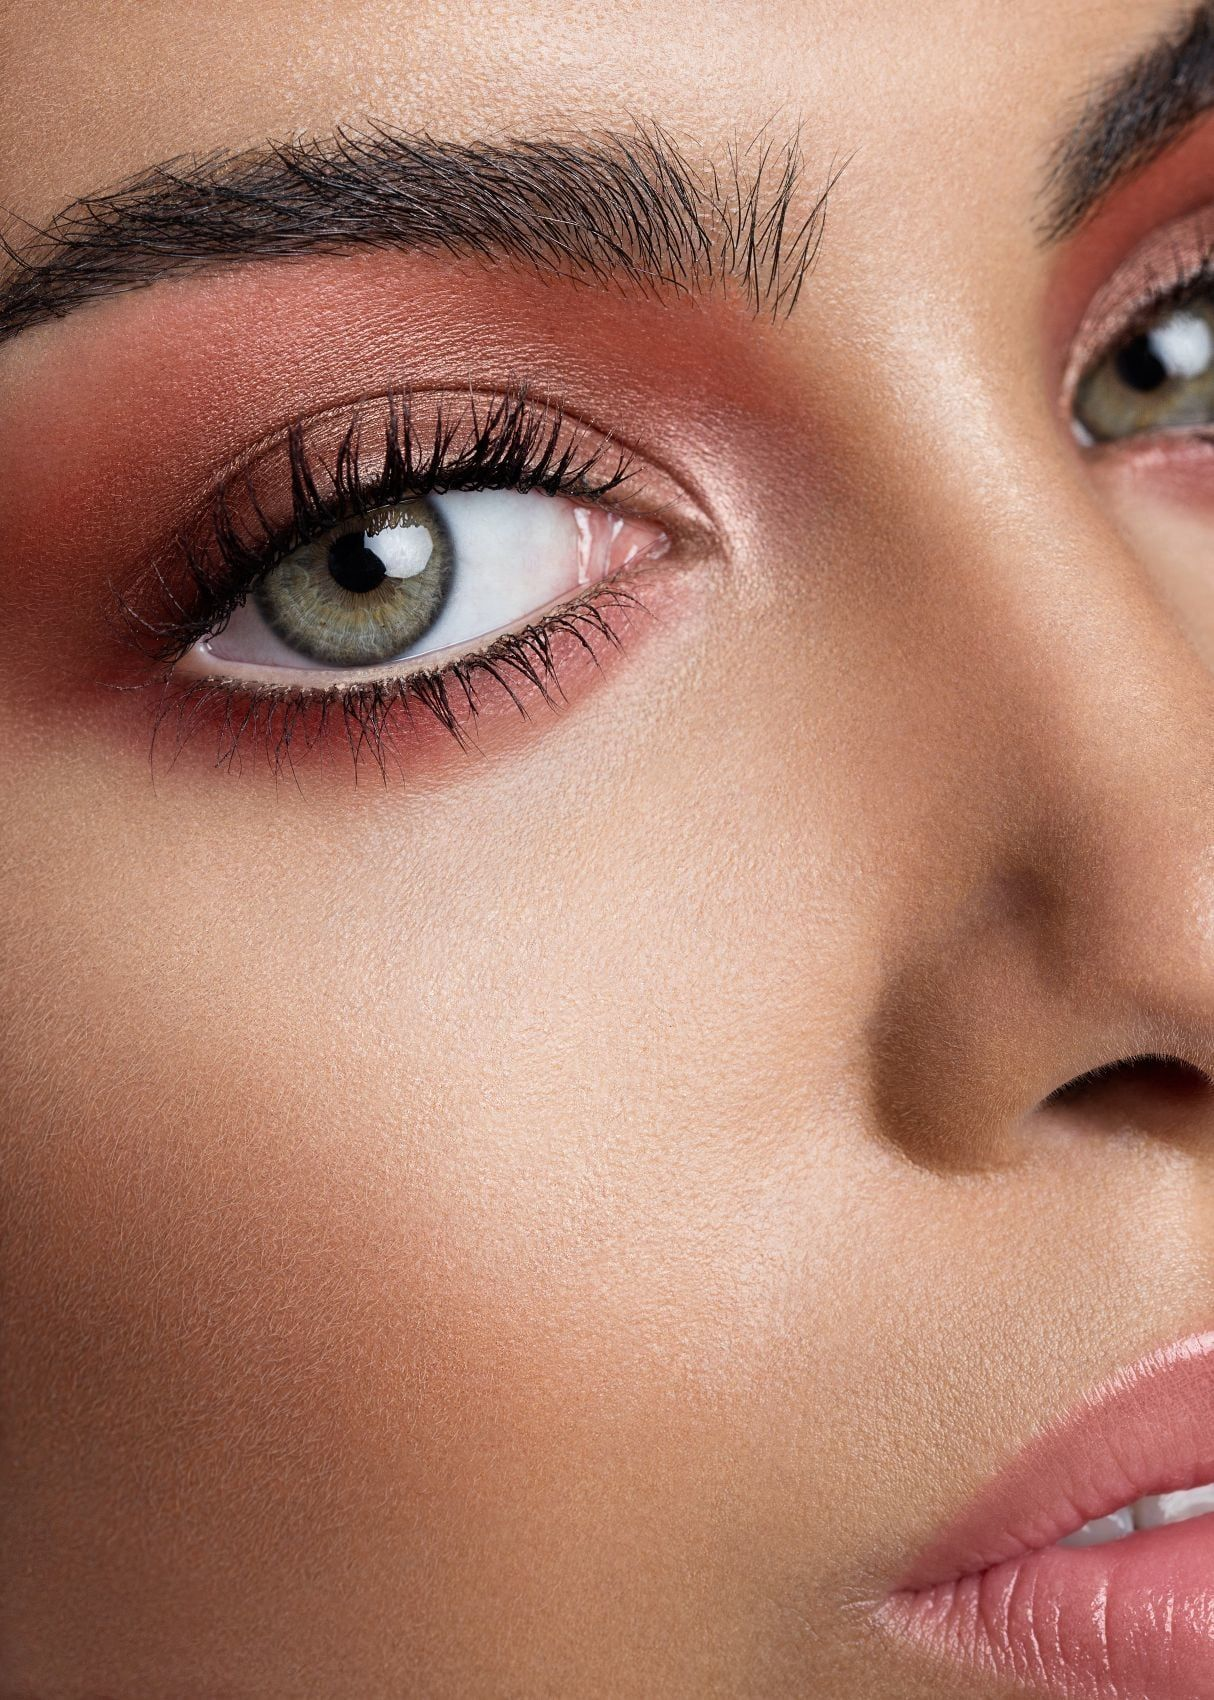 What Are The Best Eye Makeup Colors To Make Brown Eyes Pop